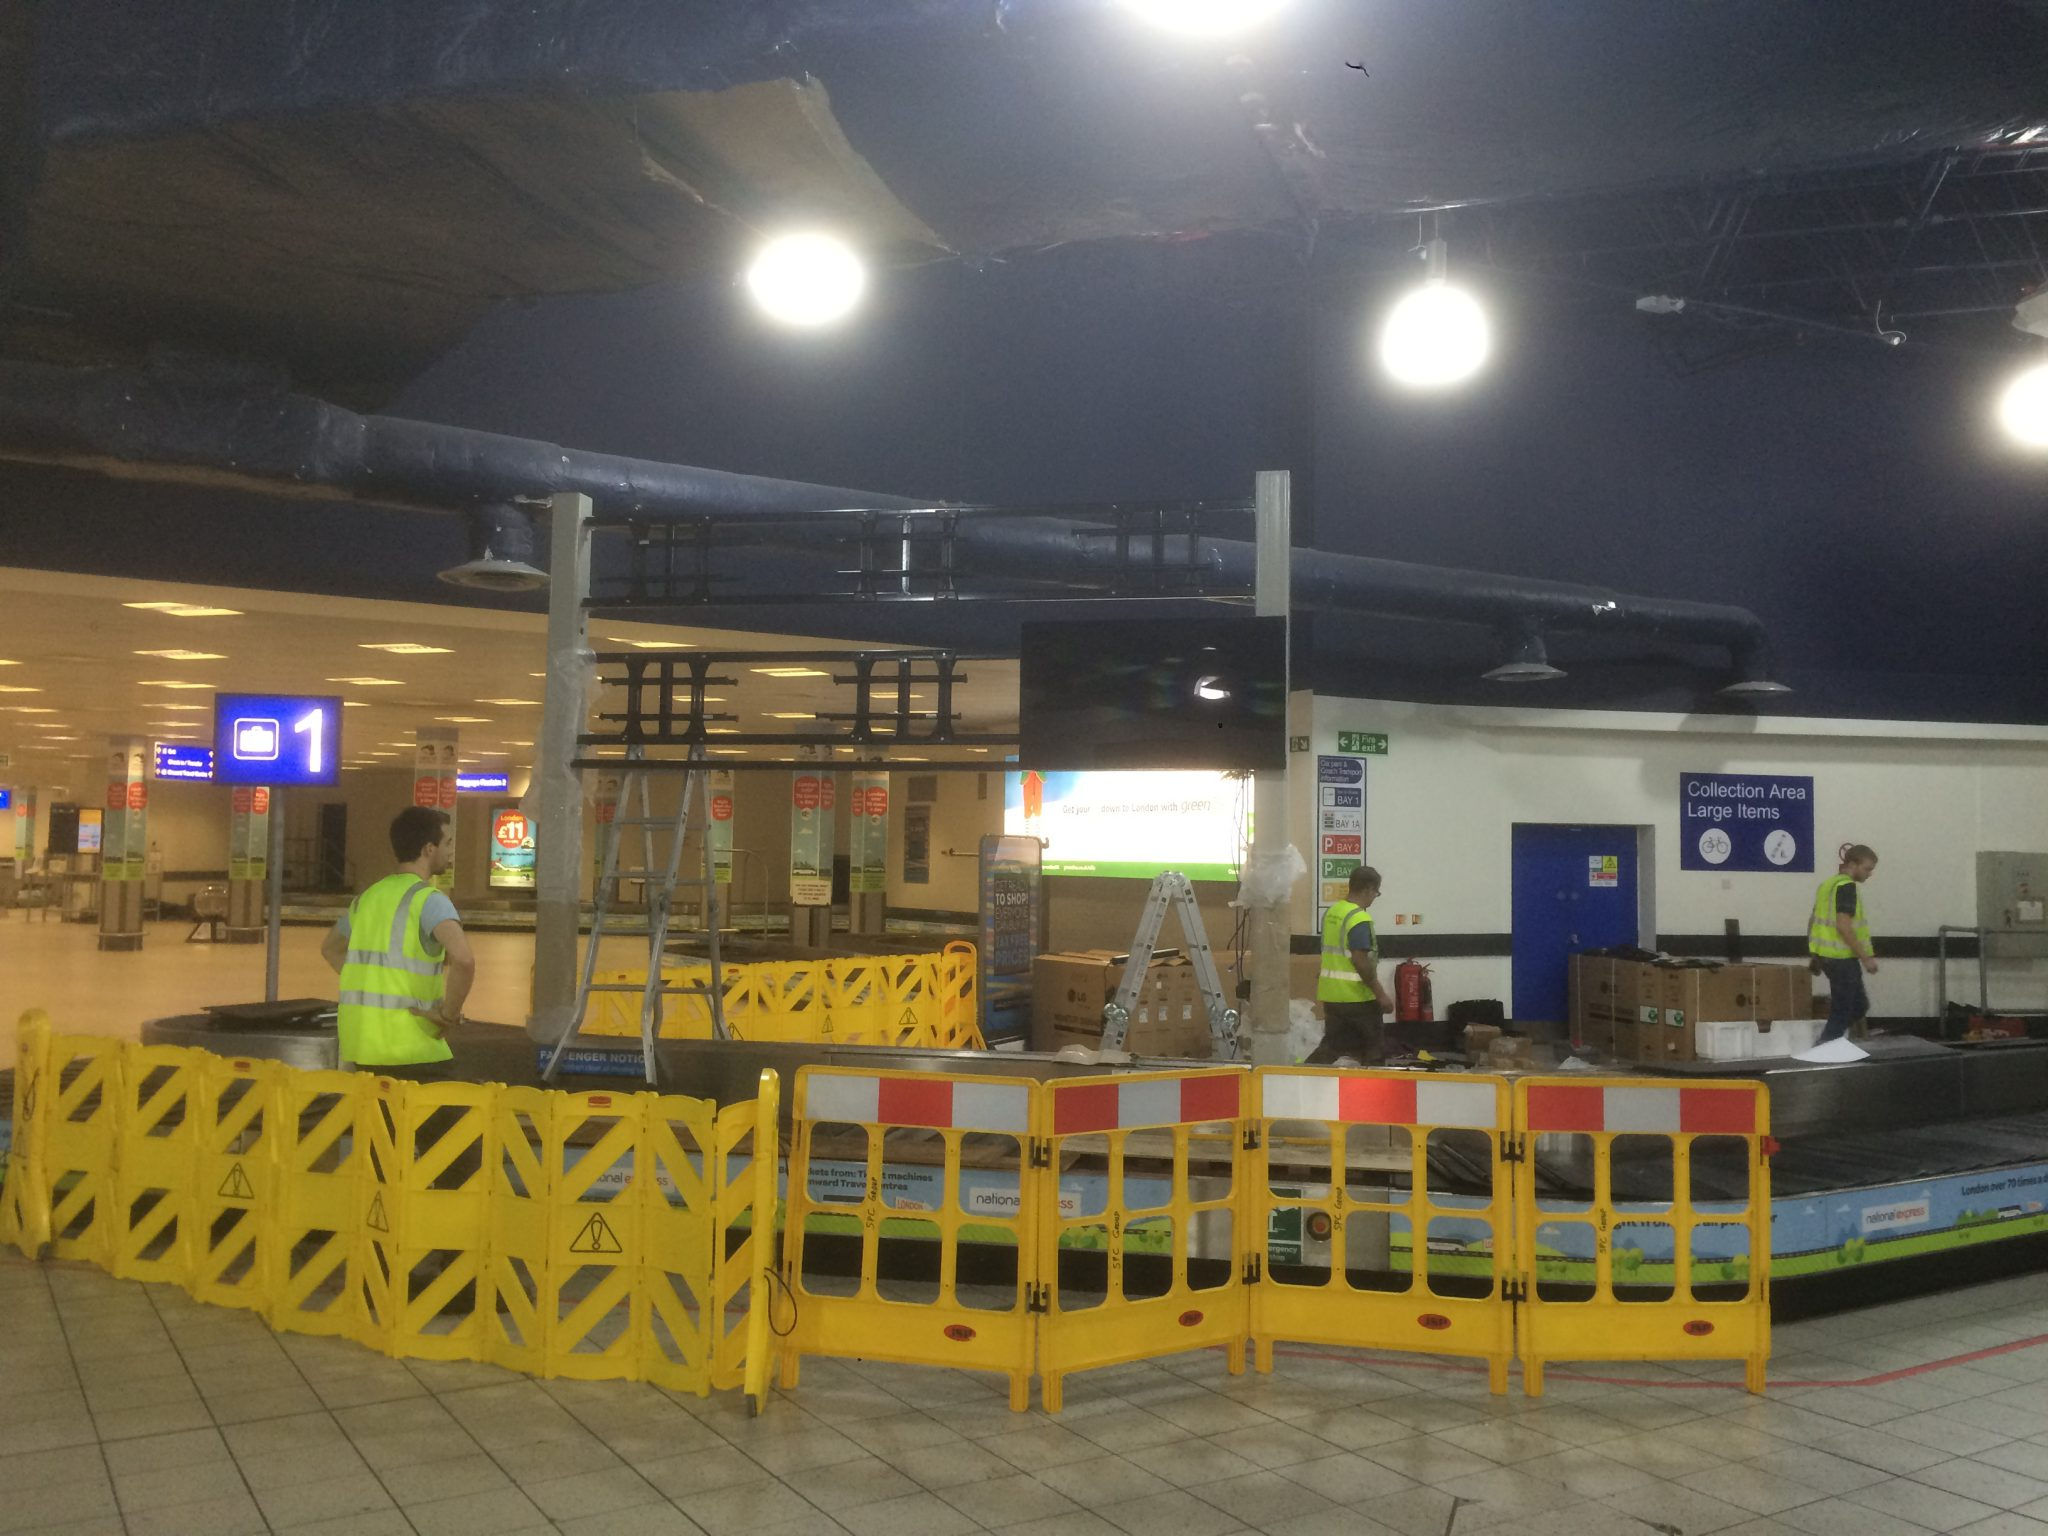 Health and Safety - Barriered worksite for video wall and steel frame installation